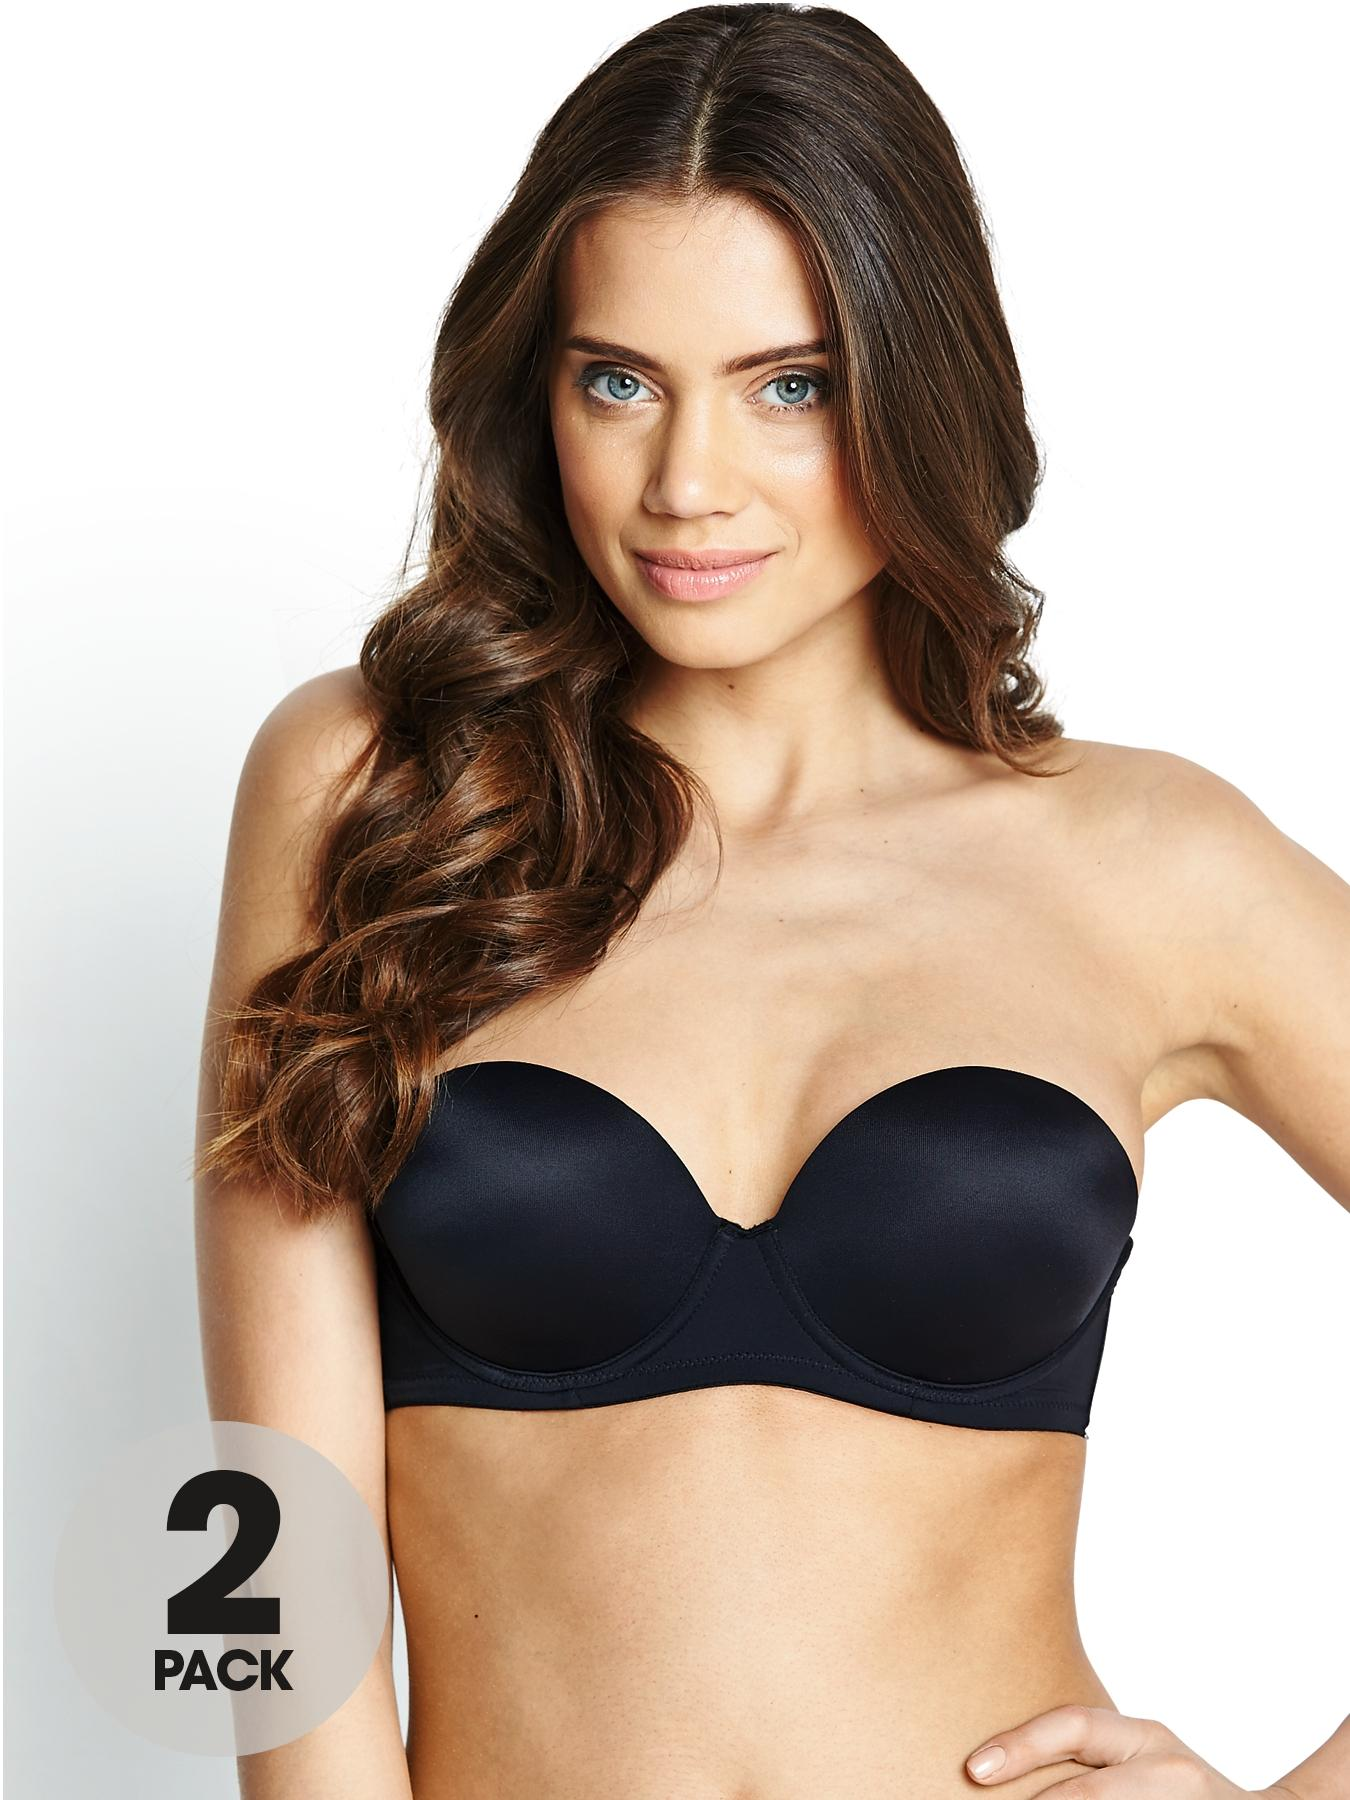 The bra sizes vary from country to country; hence the bra size conversion can be real confusion. So many factors are included while measuring the bra size making it complicated. The shape and size, position and symmetry, spacing and firmness, everything differs from an individual woman to another.